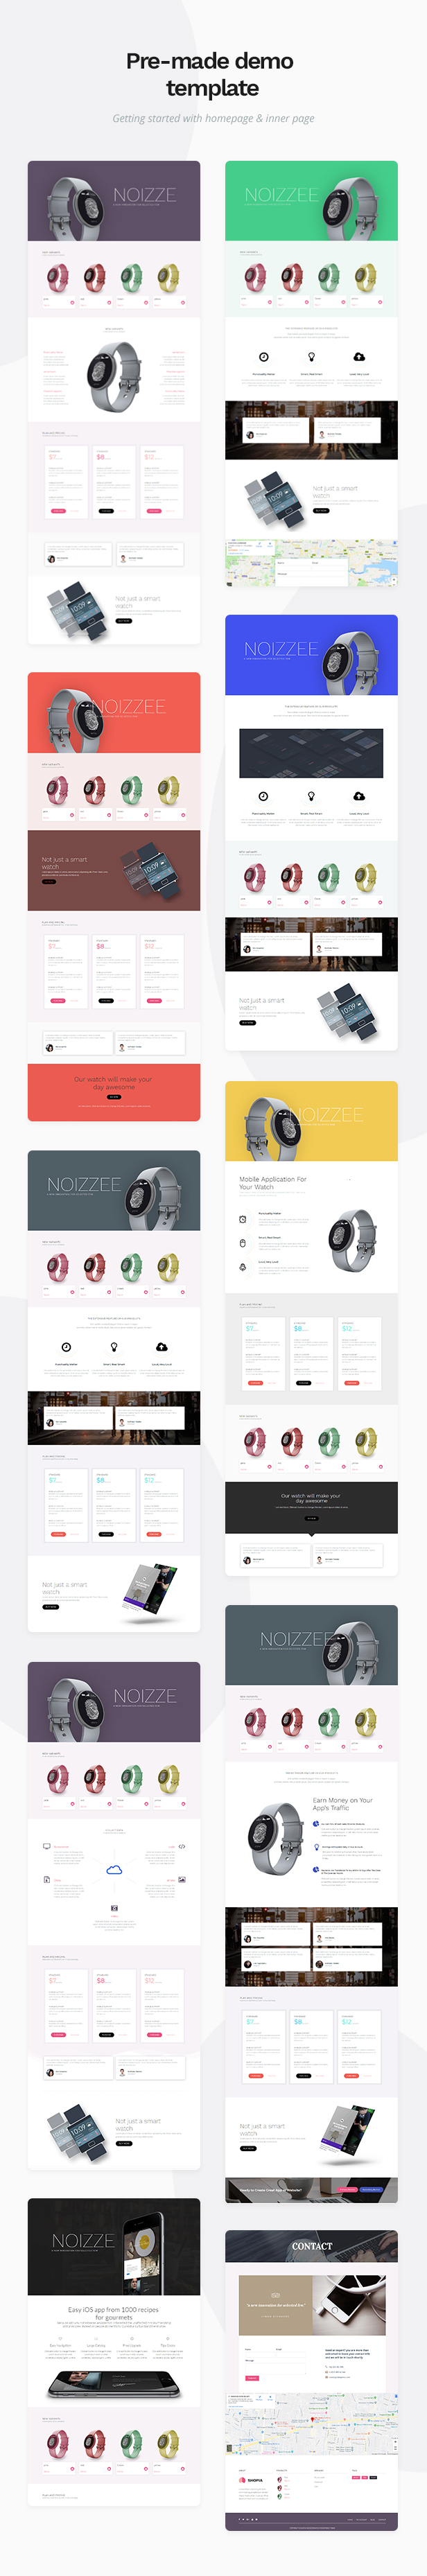 Shopia - Single Product WooCommerce WordPress Theme - 1